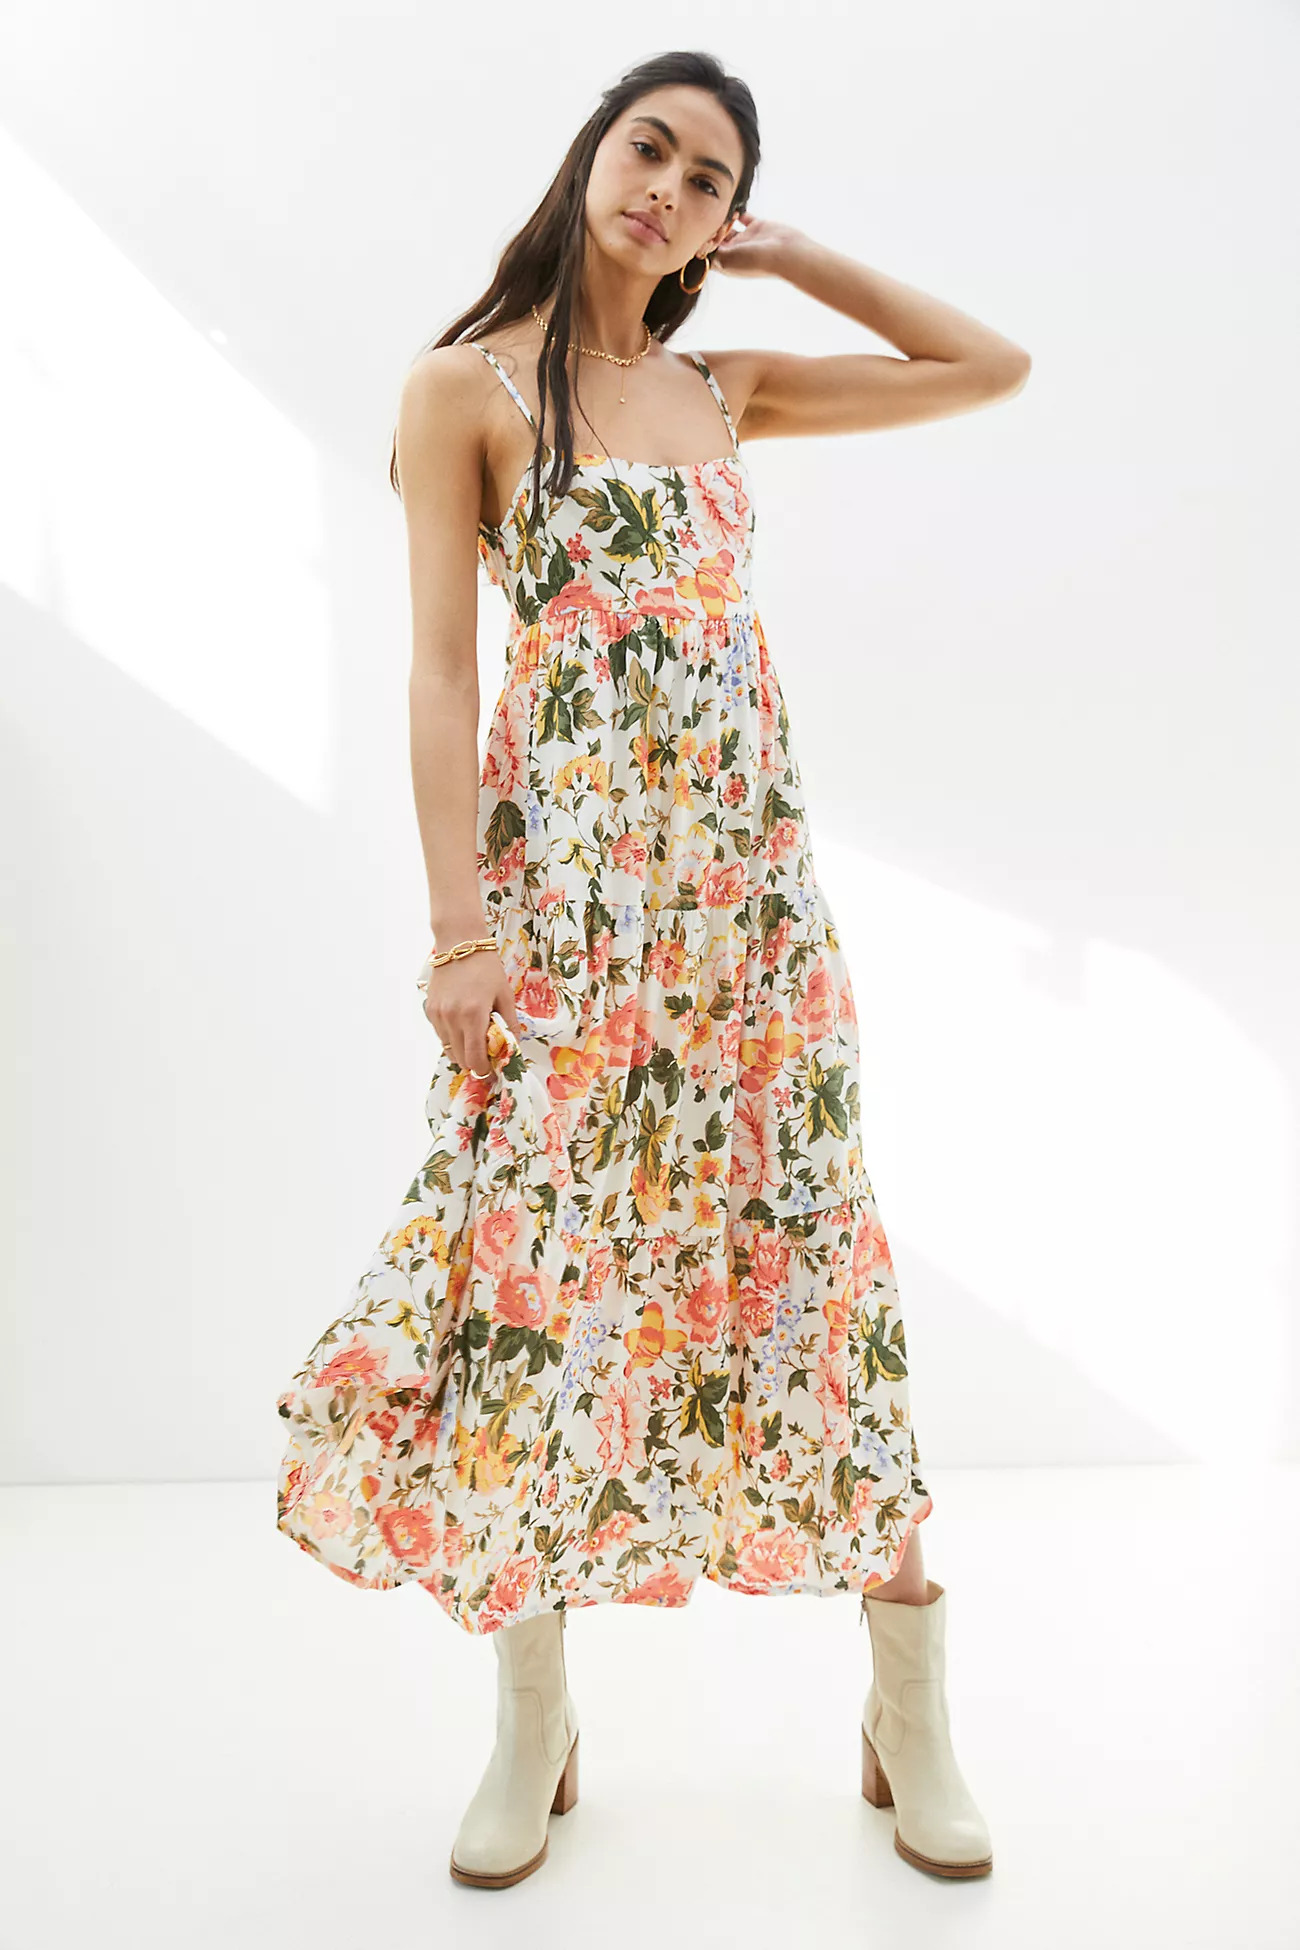 Overall for a spring wedding